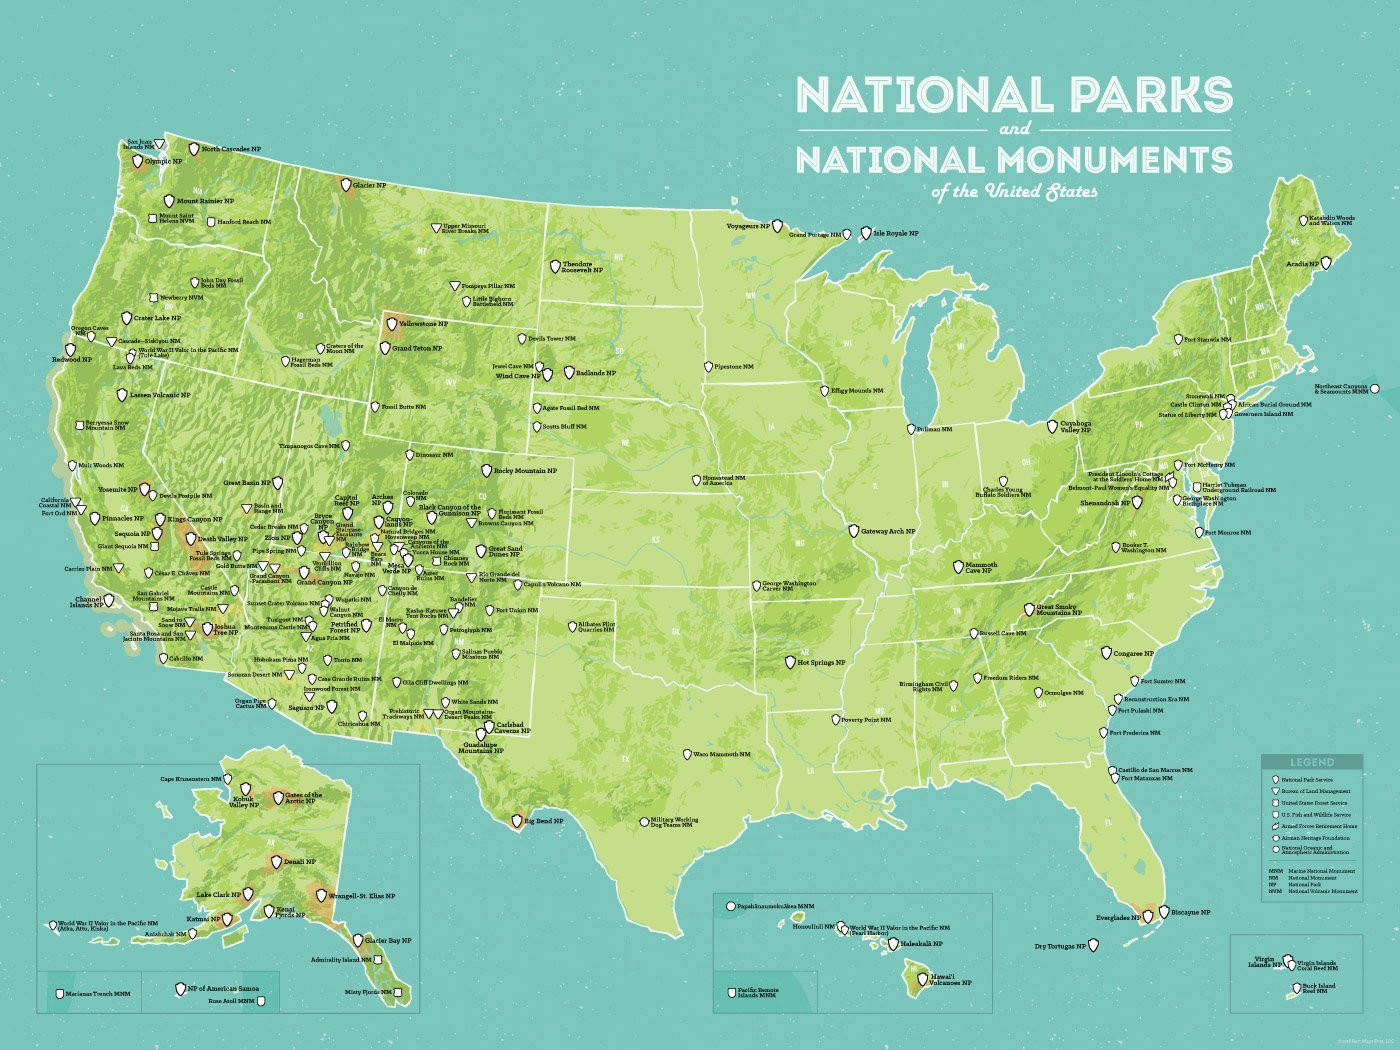 USA National Parks & National Monuments Map Poster green & aqua